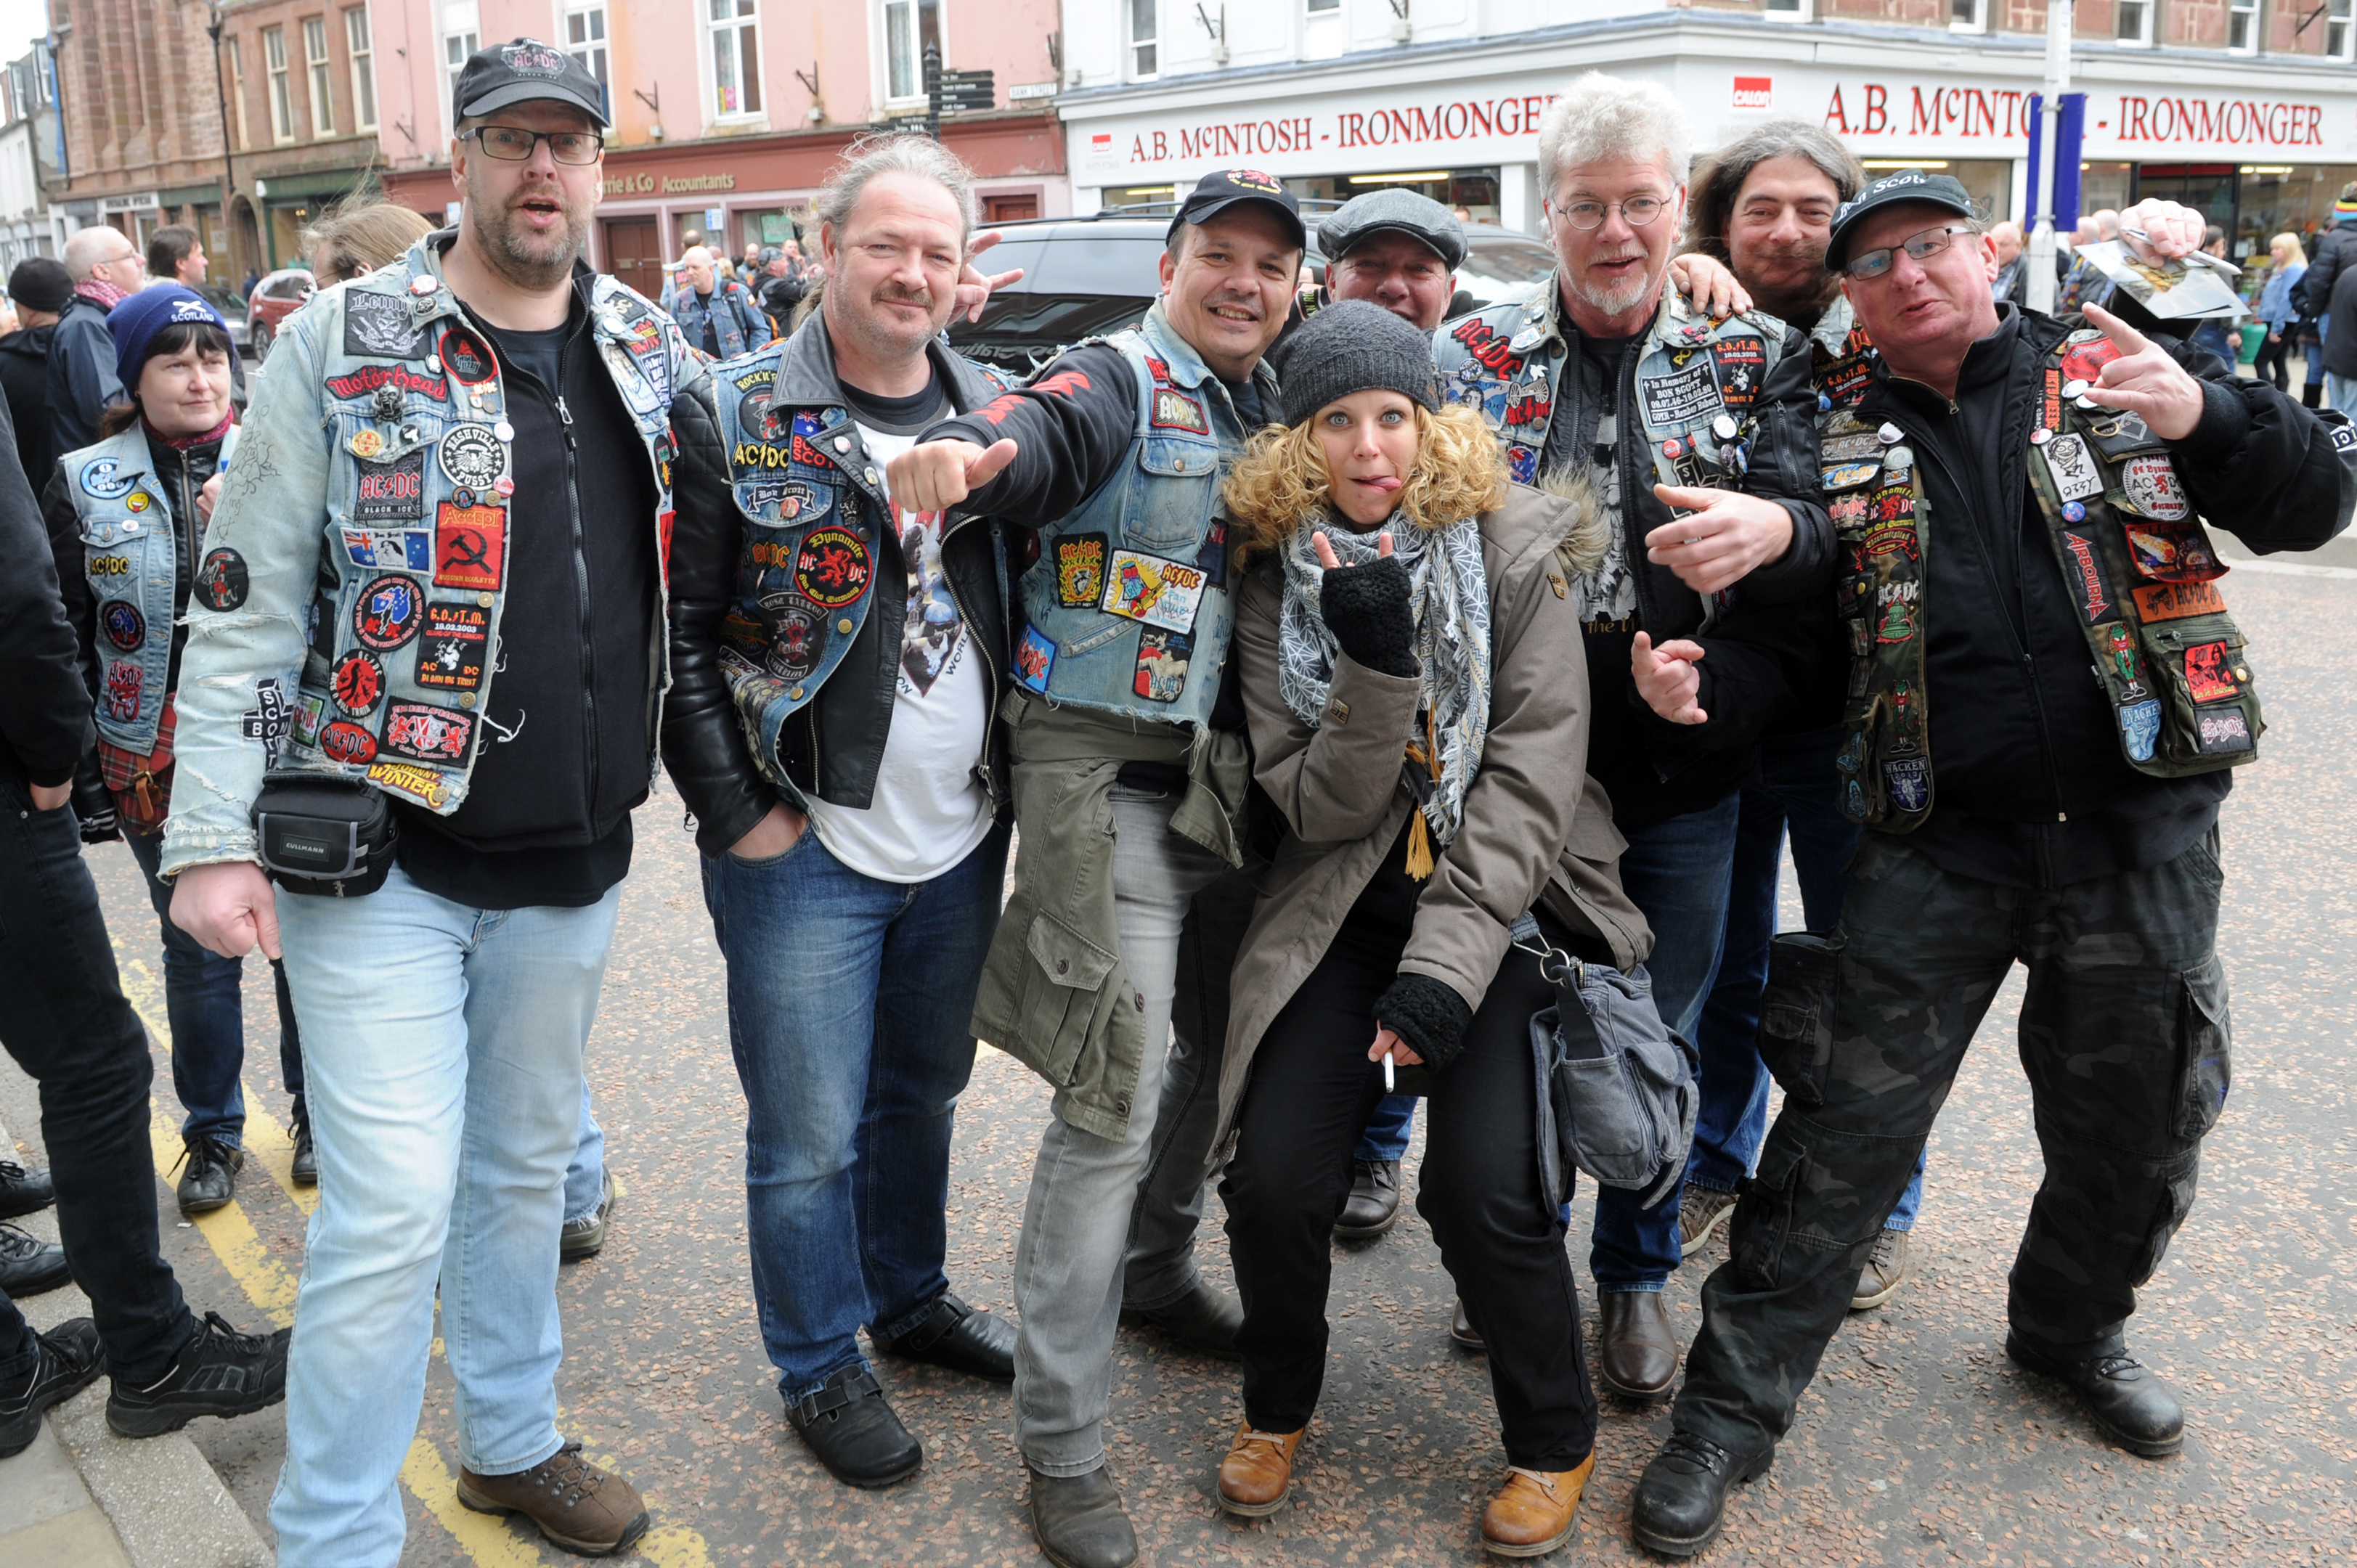 The event has been put on by the organisers of BonFest, which brings hundreds of fans to Kirriemuir every year.